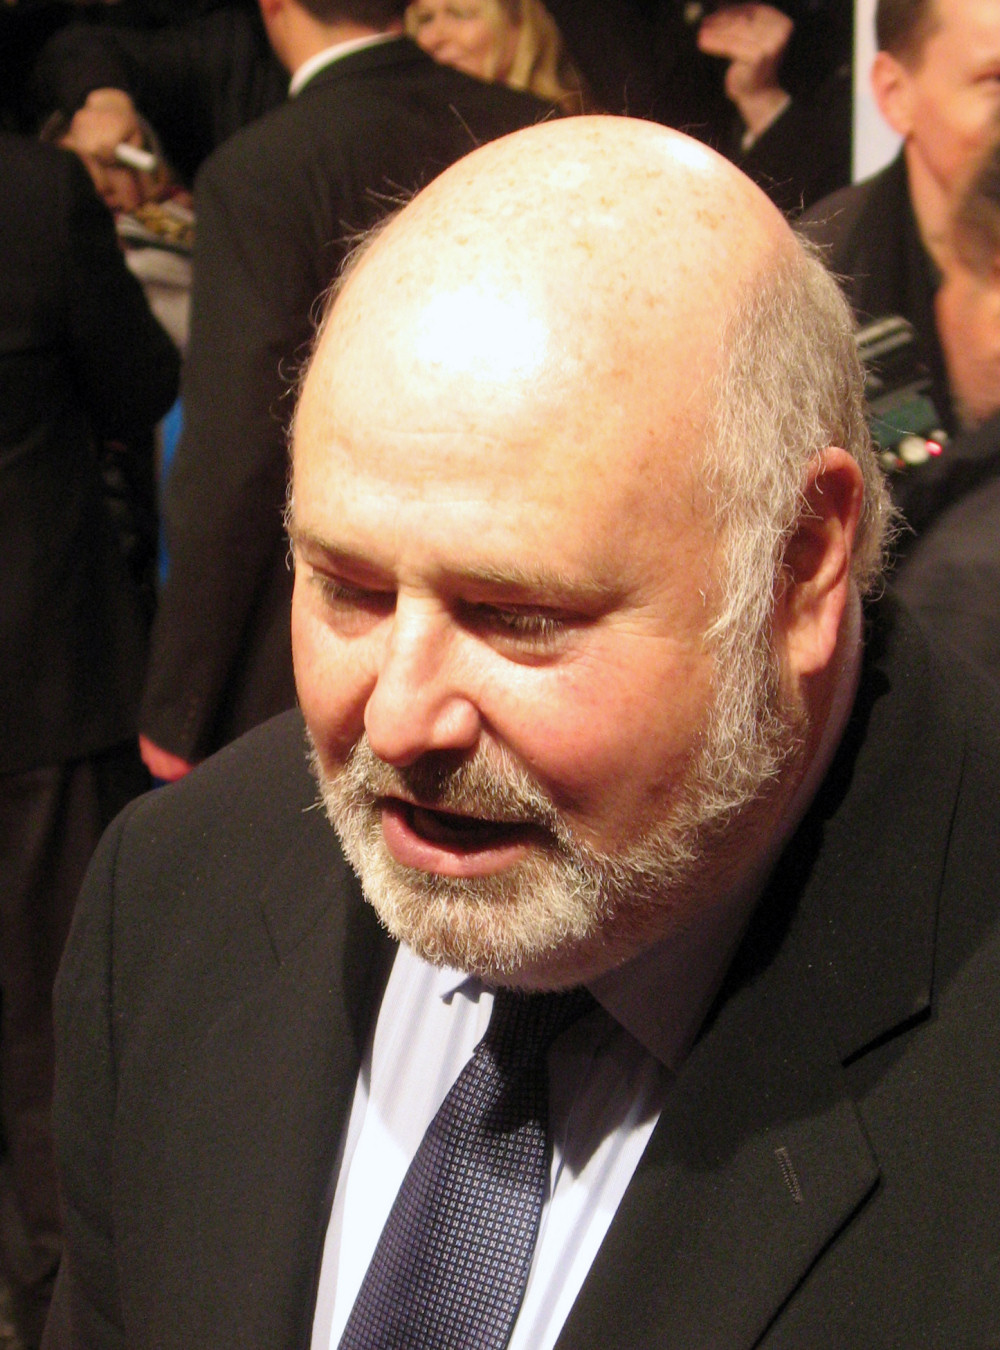 rob reiner anvilrob reiner wiki, rob reiner tv tropes, rob reiner wolf of wall street, rob reiner butter, rob reiner film, rob reiner, rob reiner movies, rob reiner imdb, rob reiner quit smoking, rob reiner movies list, rob reiner stand by me, rob reiner spinal tap, rob reiner young, rob reiner lbj, rob reiner anvil, rob reiner being charlie, rob reiner net worth, rob reiner all in the family, rob reiner's mock rock band, rob reiner biography